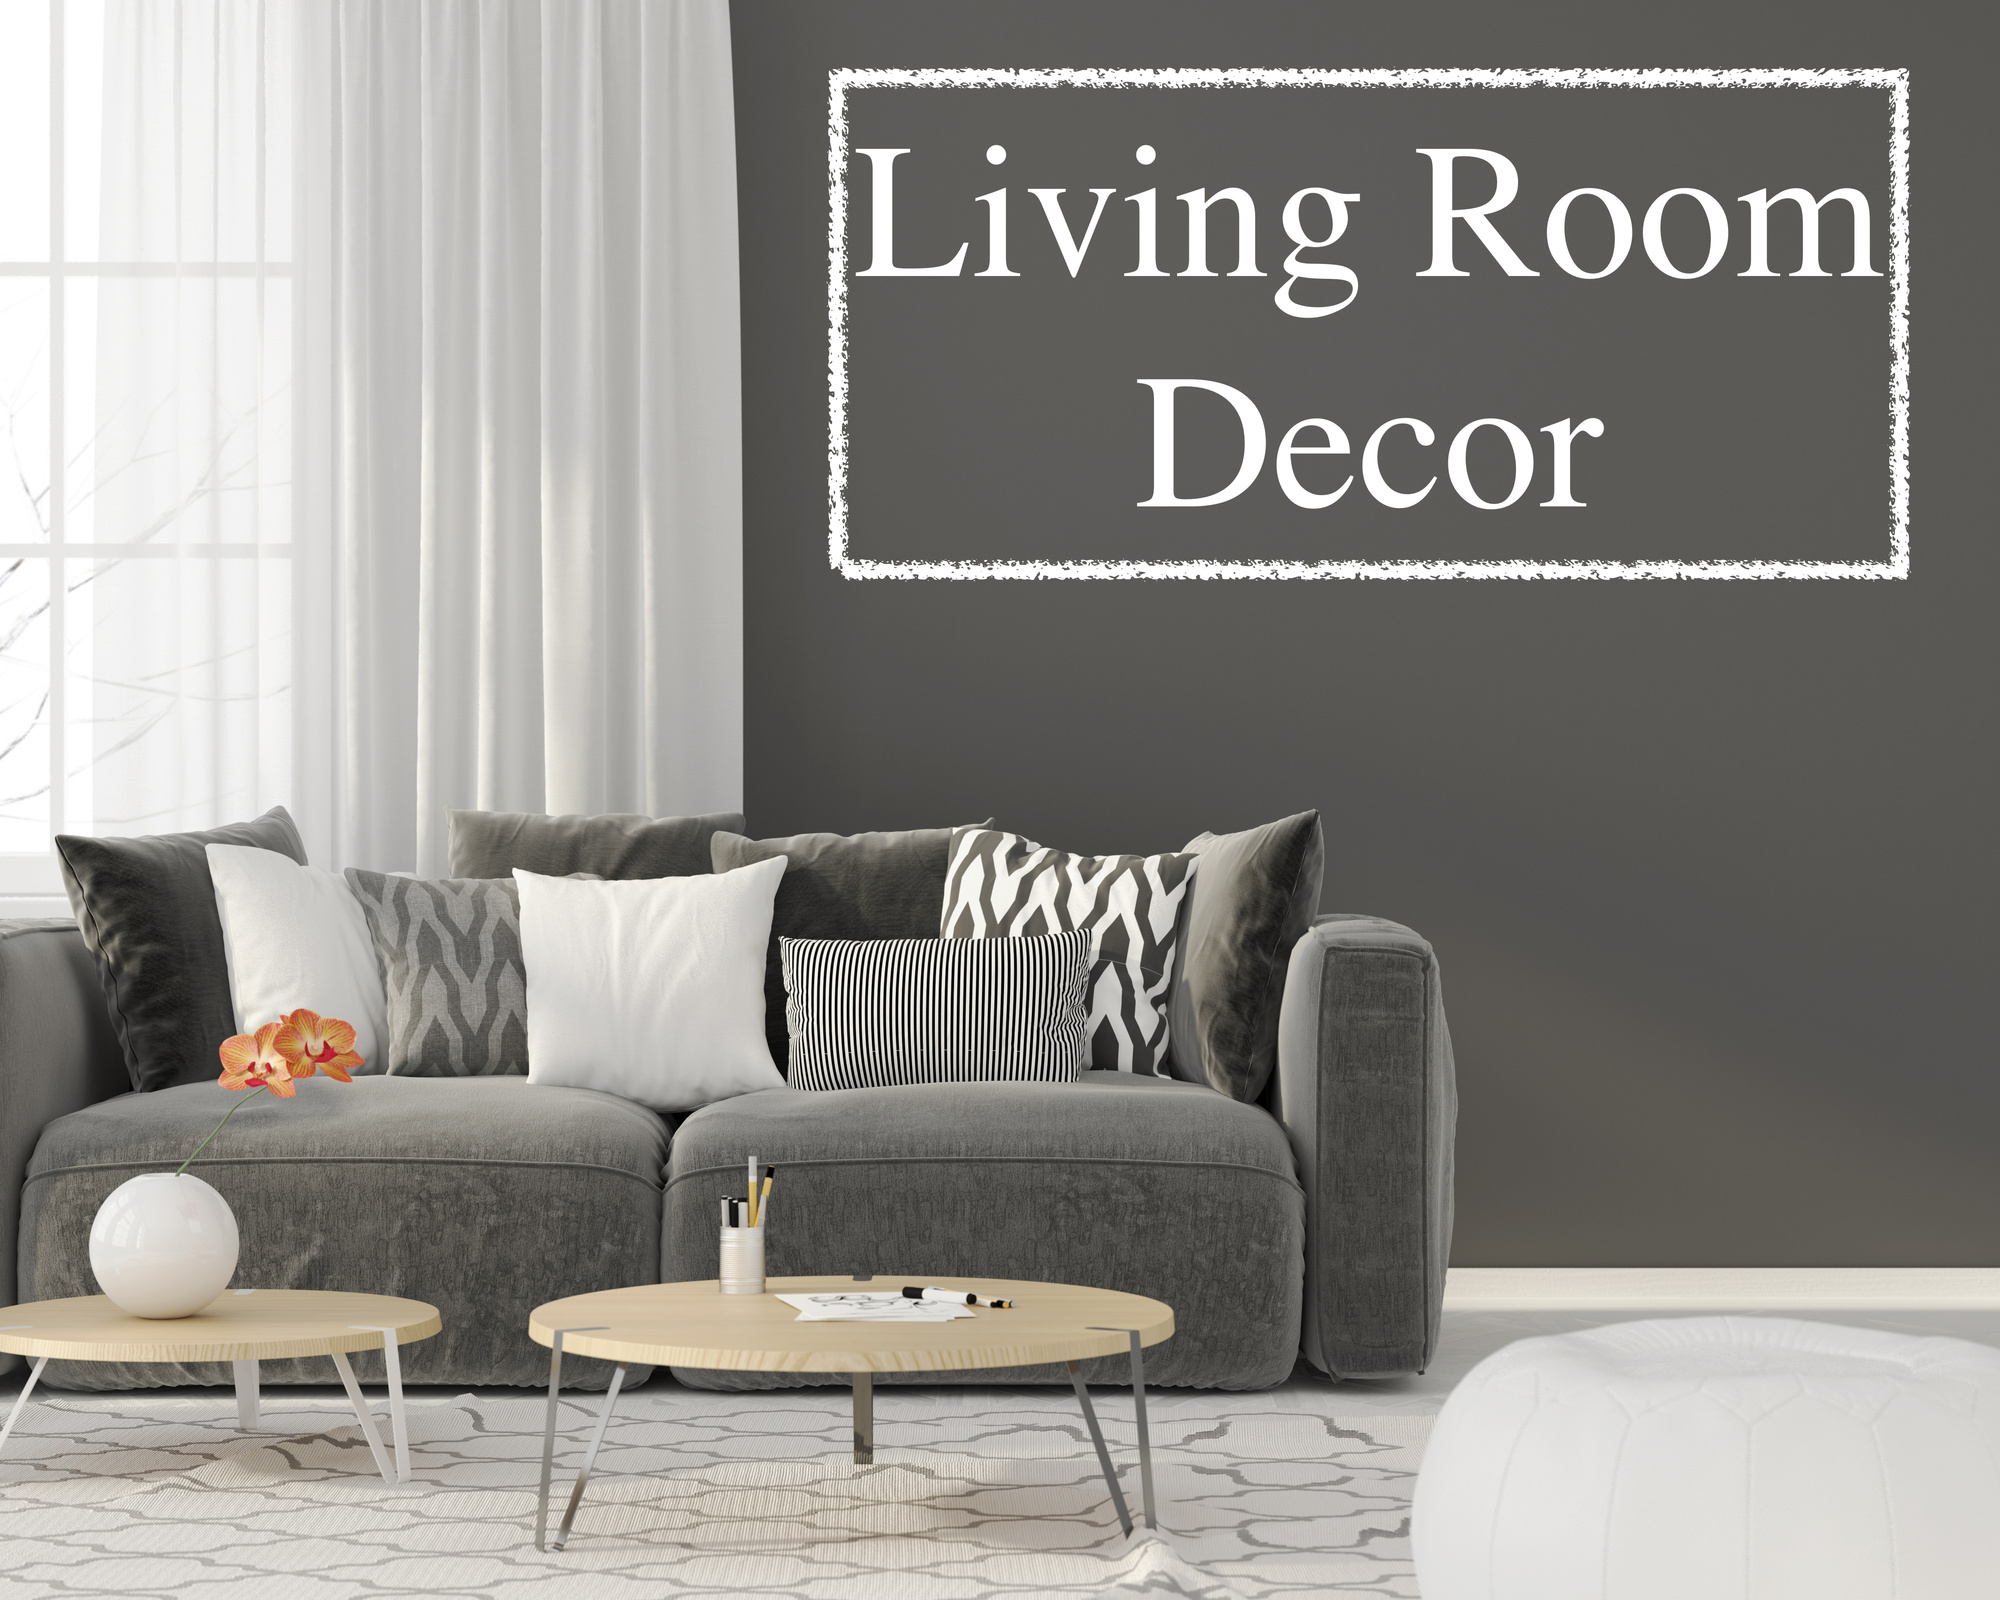 Personalize your new home 5 living room decor ideas you - What do you need in a living room ...